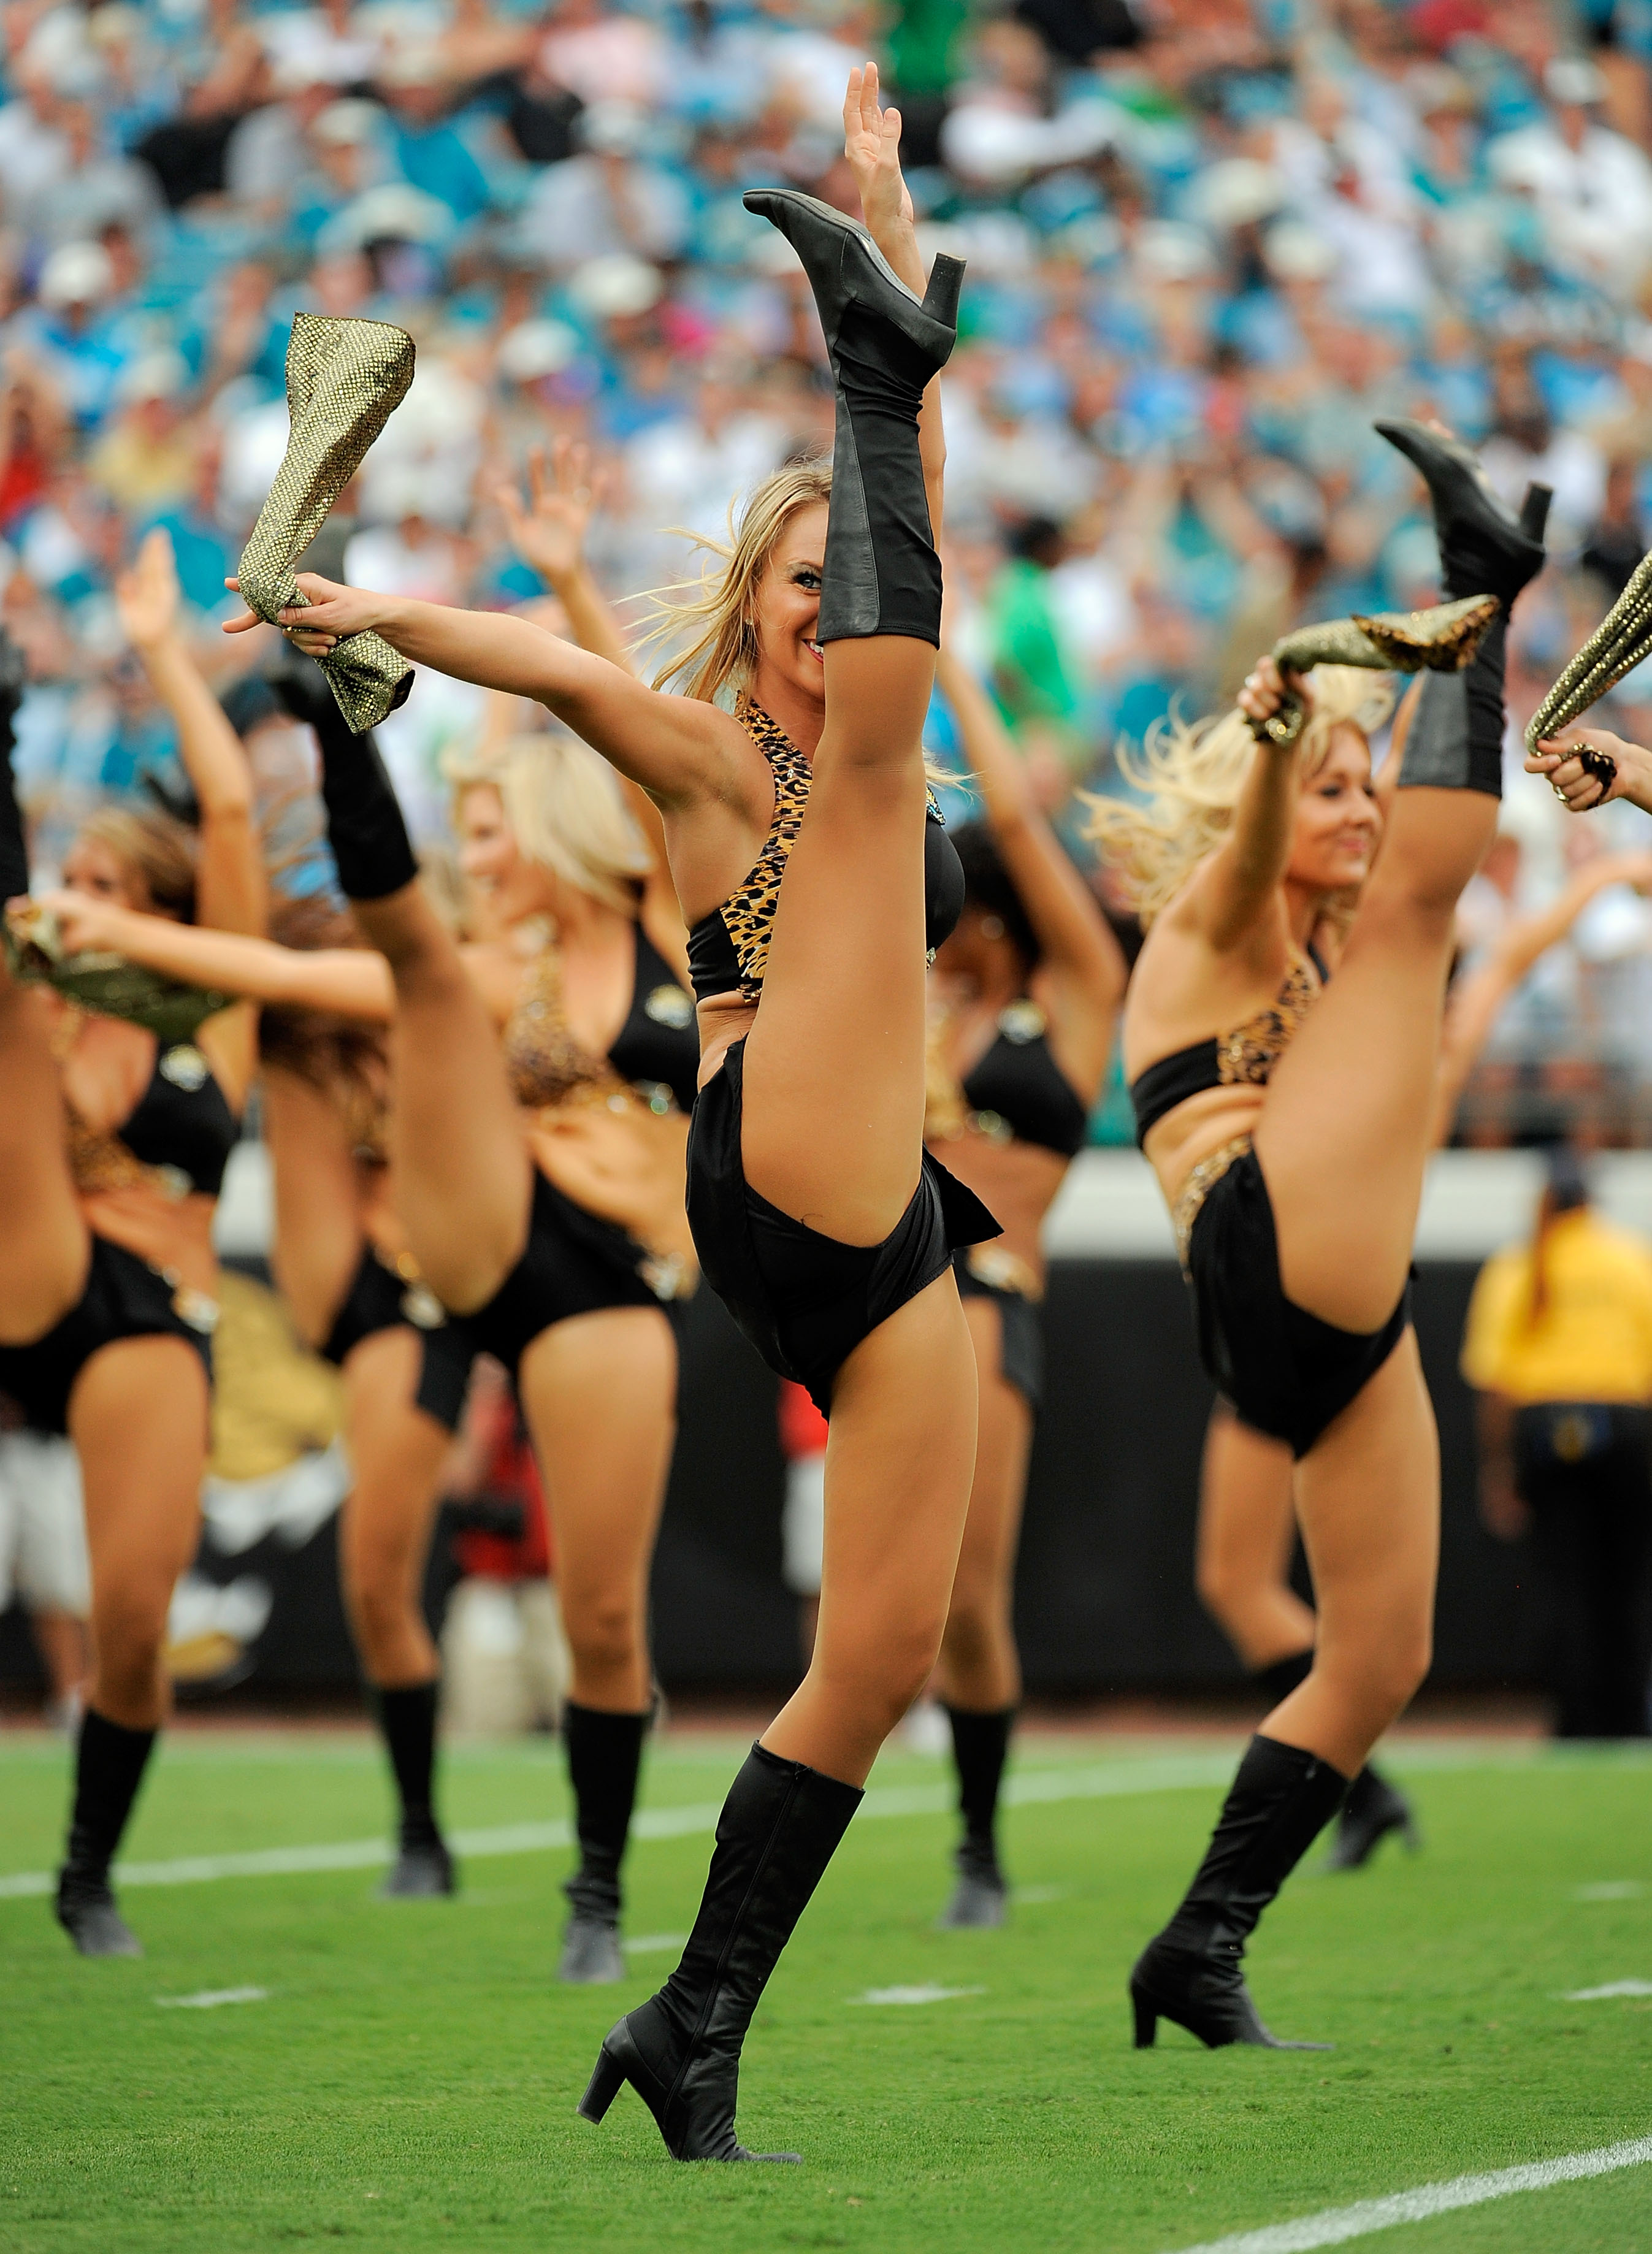 JACKSONVILLE, FL - SEPTEMBER 26: The Jacksonville Jaguars cheerleaders perform during a stoppage in play against the Philadelphia Eagles at EverBank Field on September 26, 2010 in Jacksonville, Florida. The Eagles defeated the Jaguars 28-3.  (Photo by Dou